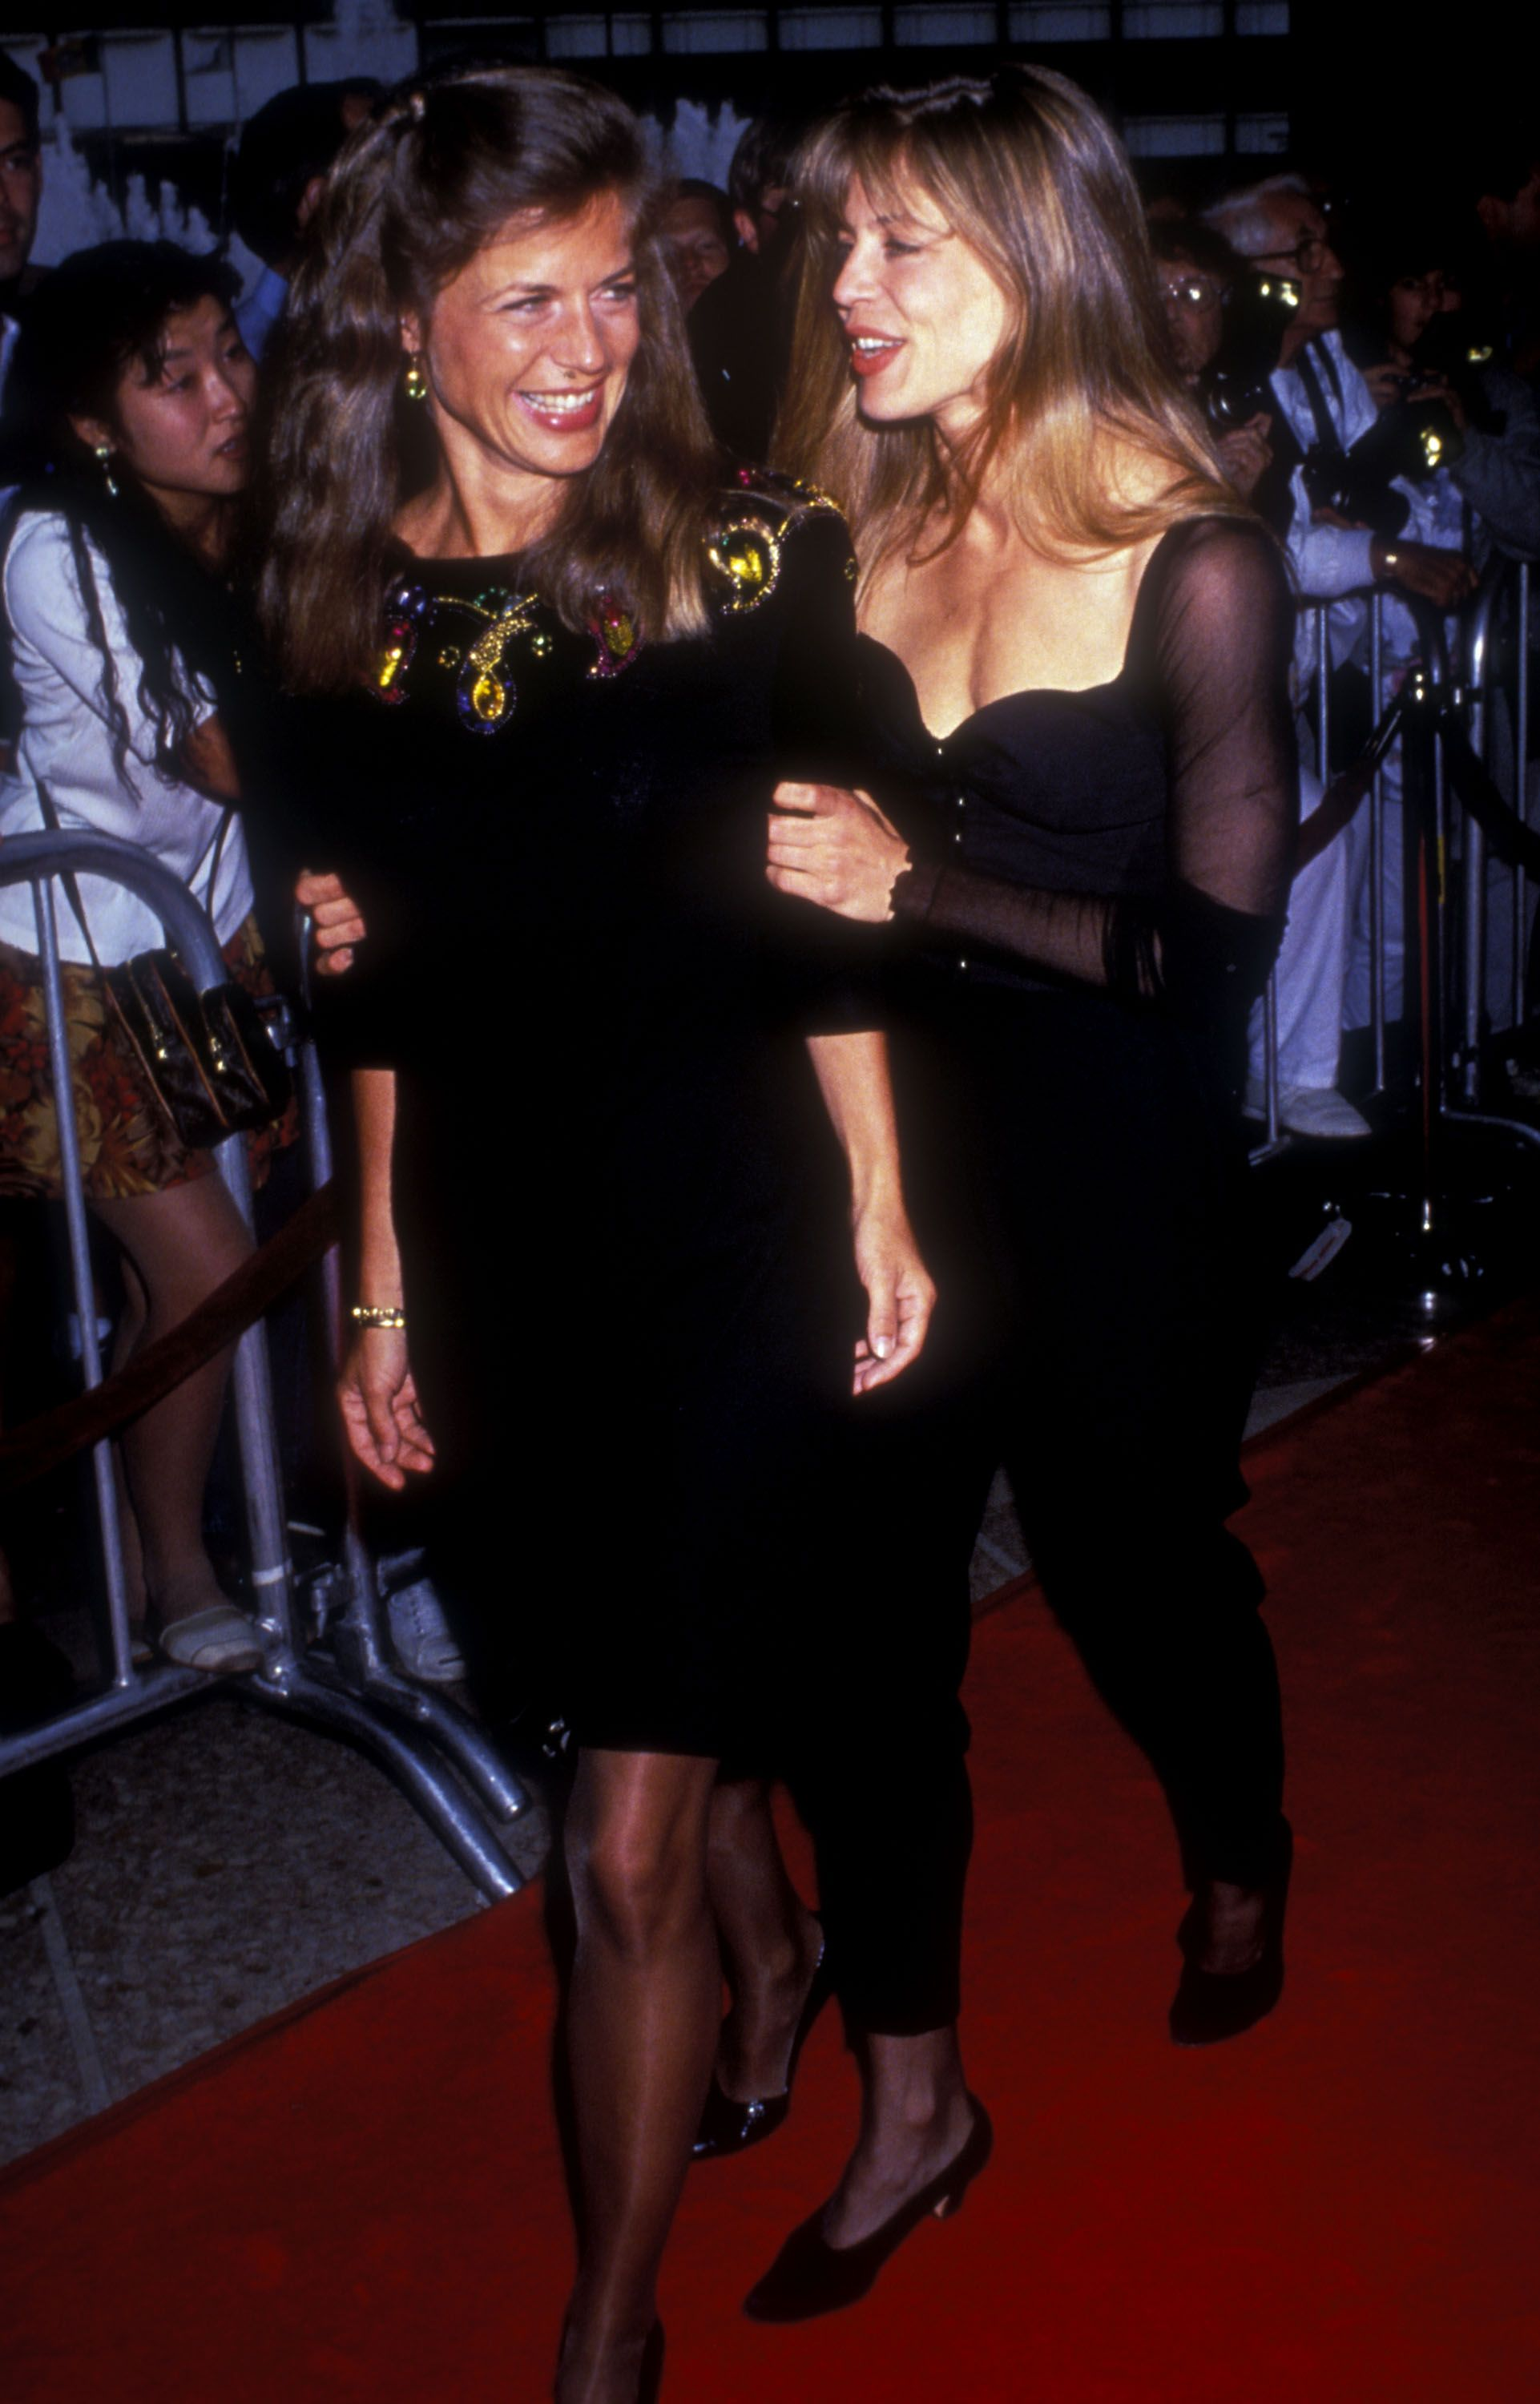 """Linda Hamilton and Leslie H. Freas during premiere of """"Terminator 2: Judgment Day"""" at Cineplex Odeon in Century City, CA, United States in 1991.   Photo: Getty Images"""